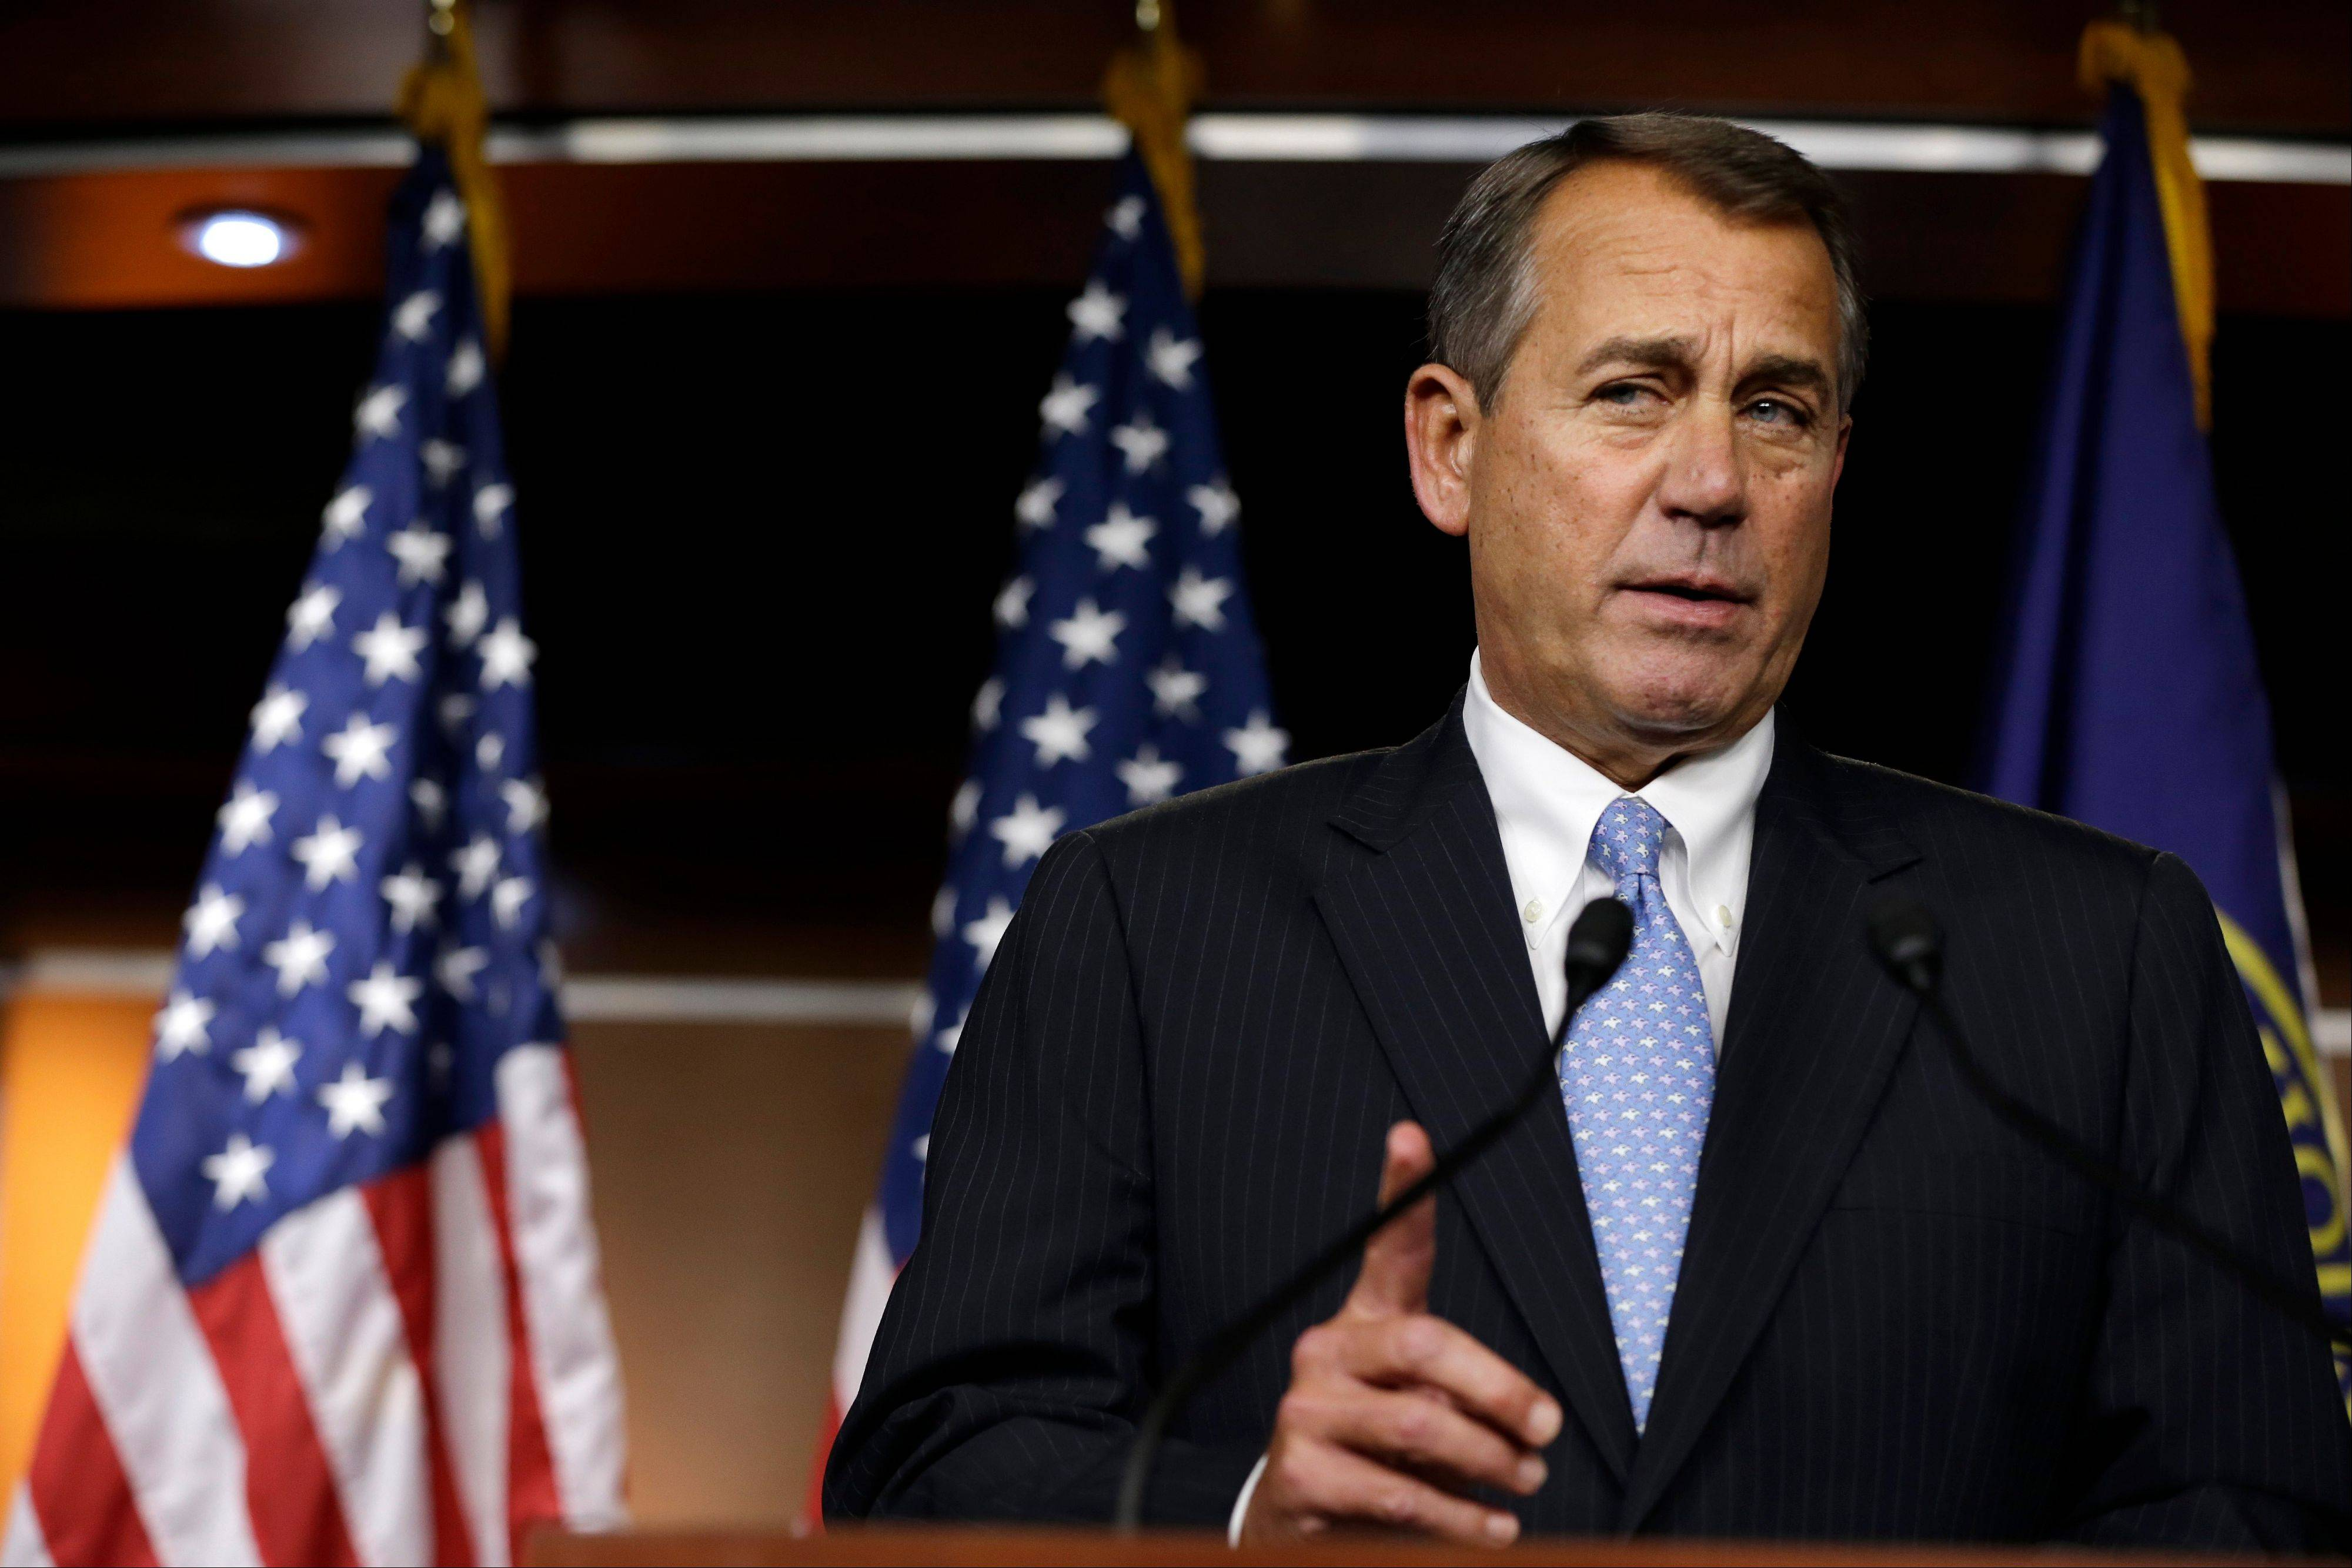 House Speaker Rep. John Boehner of Ohio, speaks to the media about the fiscal cliff at the U.S. Capitol in Washington, on Thursday.